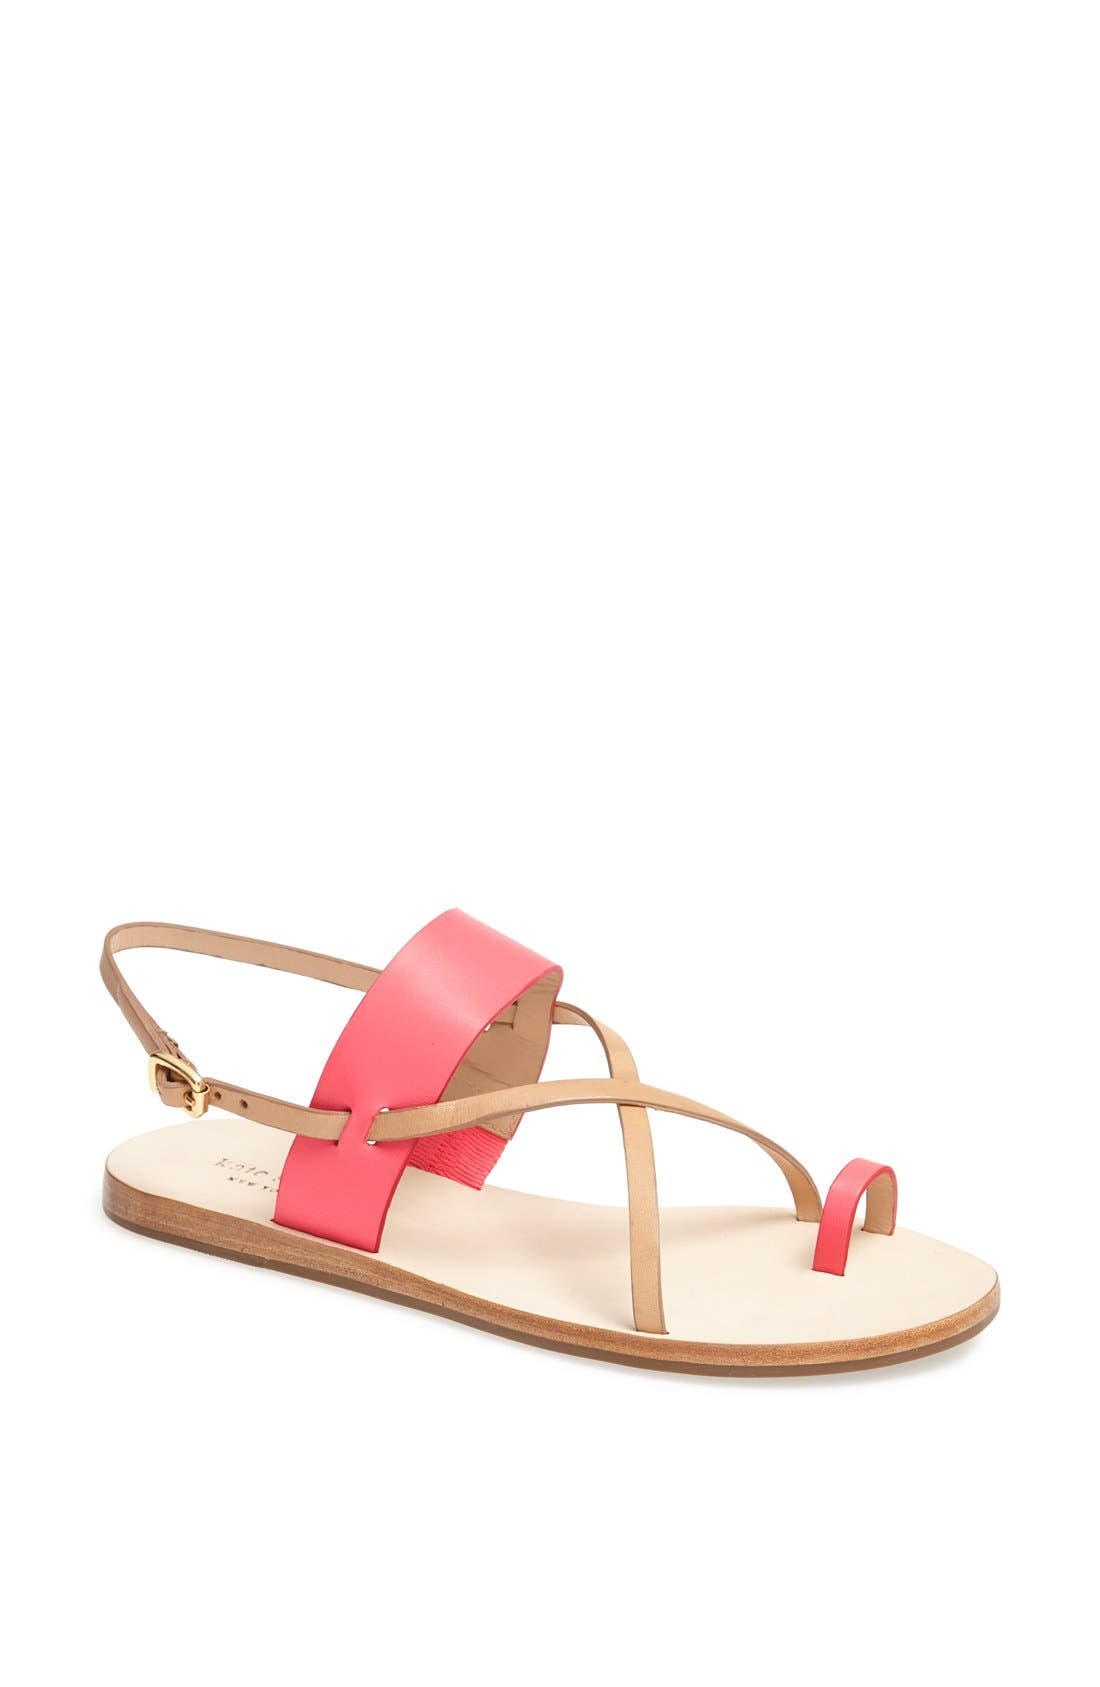 Main Image - kate spade new york 'ashley' sandal